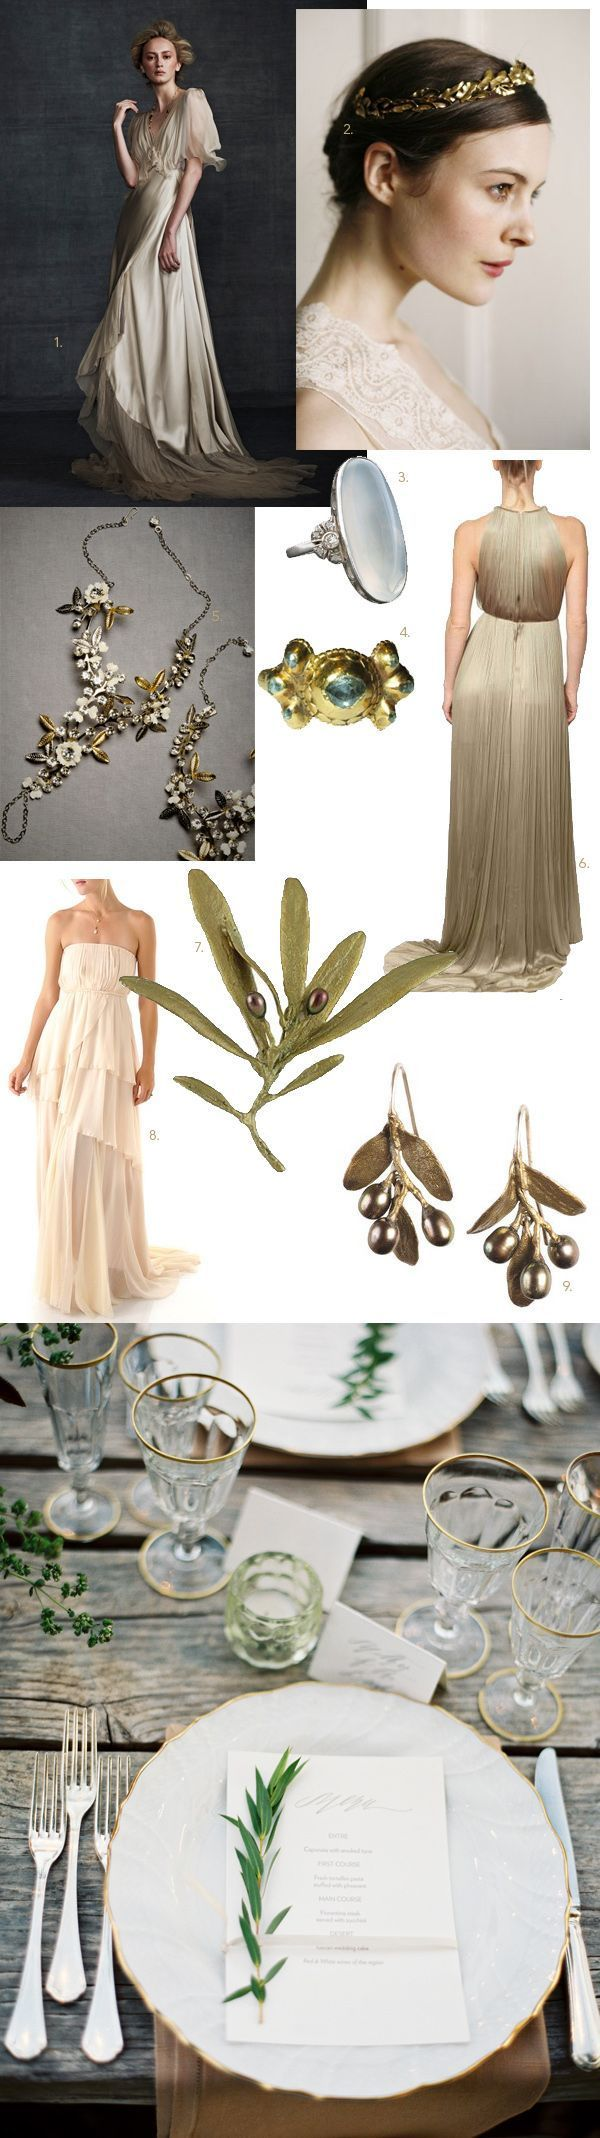 greek-goddess-wedding-roundup